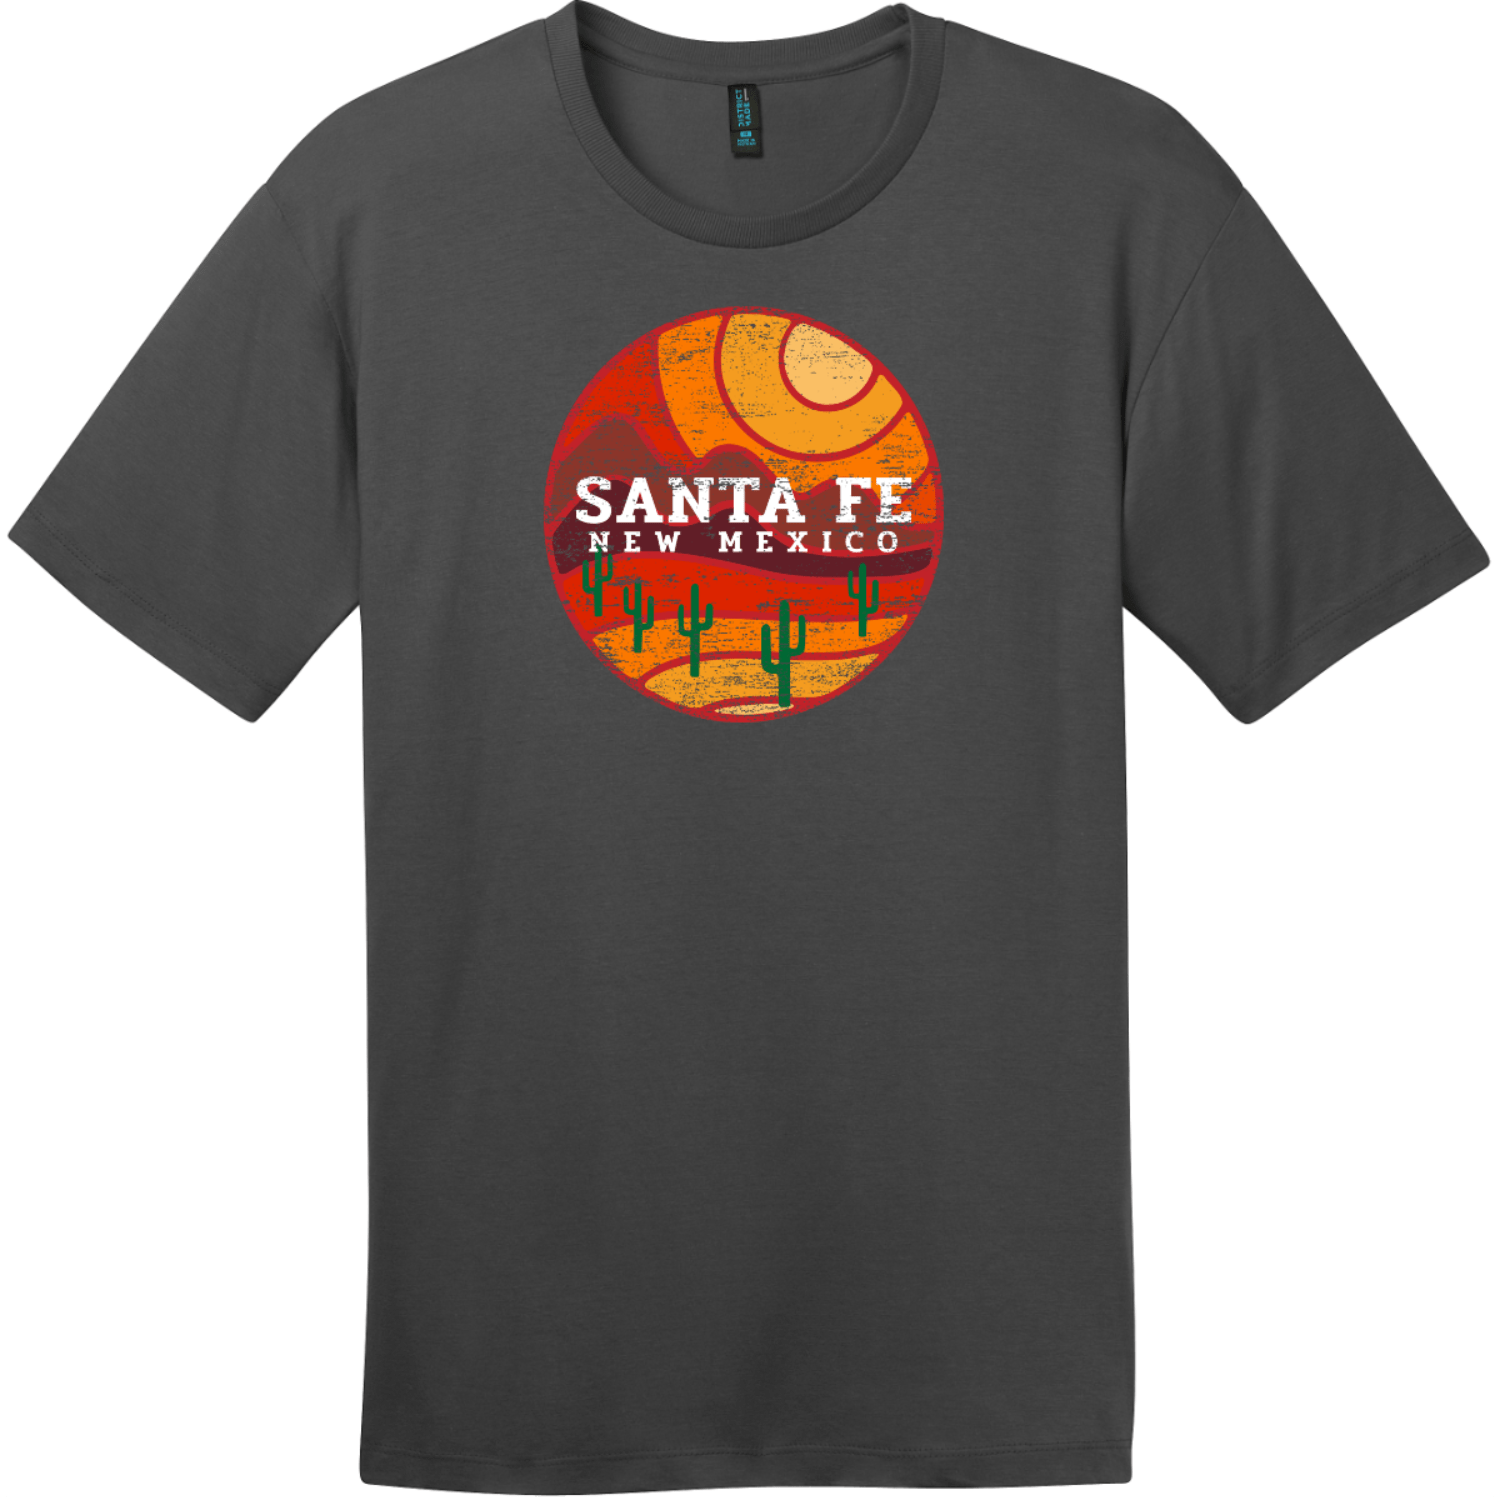 Santa Fe New Mexico Desert To Mountains Vintage T-Shirt Charcoal District Perfect Weight Tee DT104